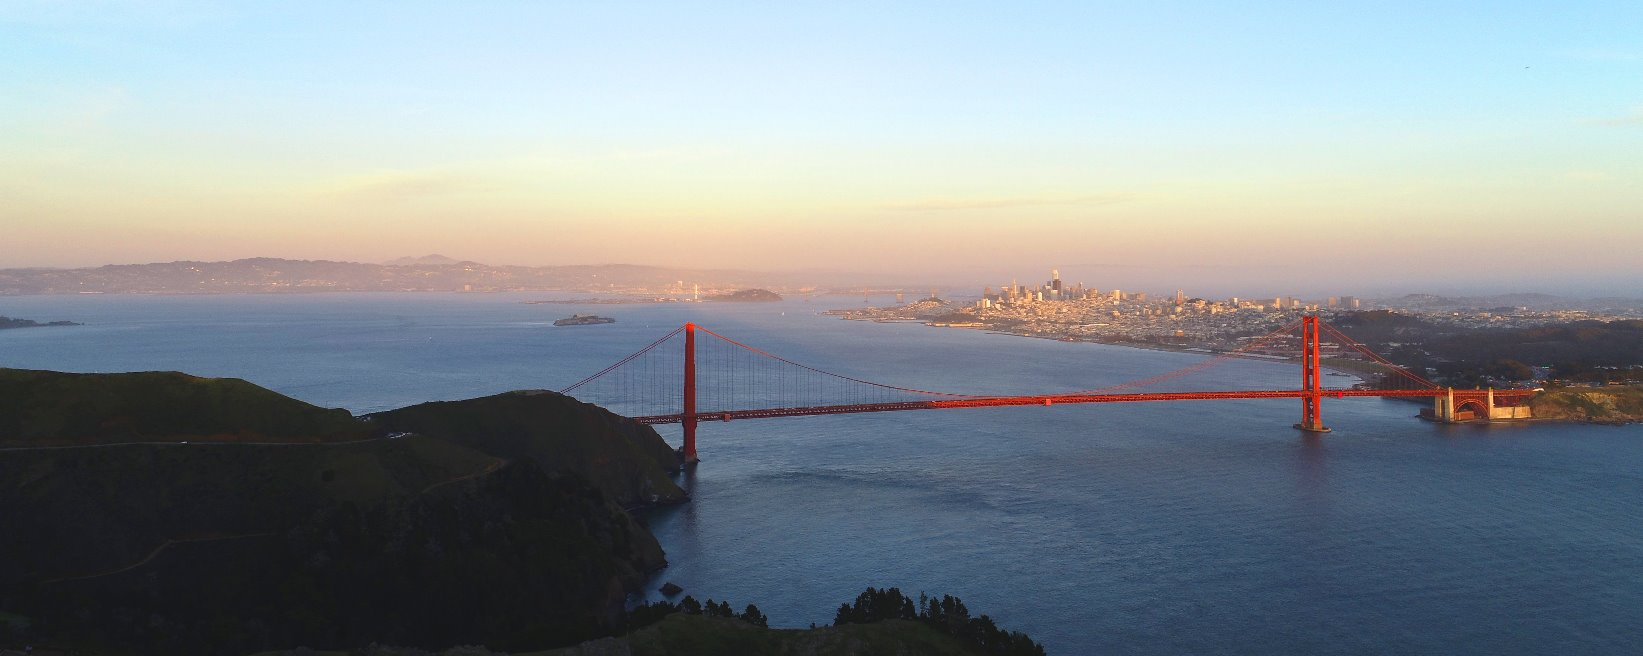 top_luxury_private_tours_of_san_francisco_with_personalized_trip_itineraries